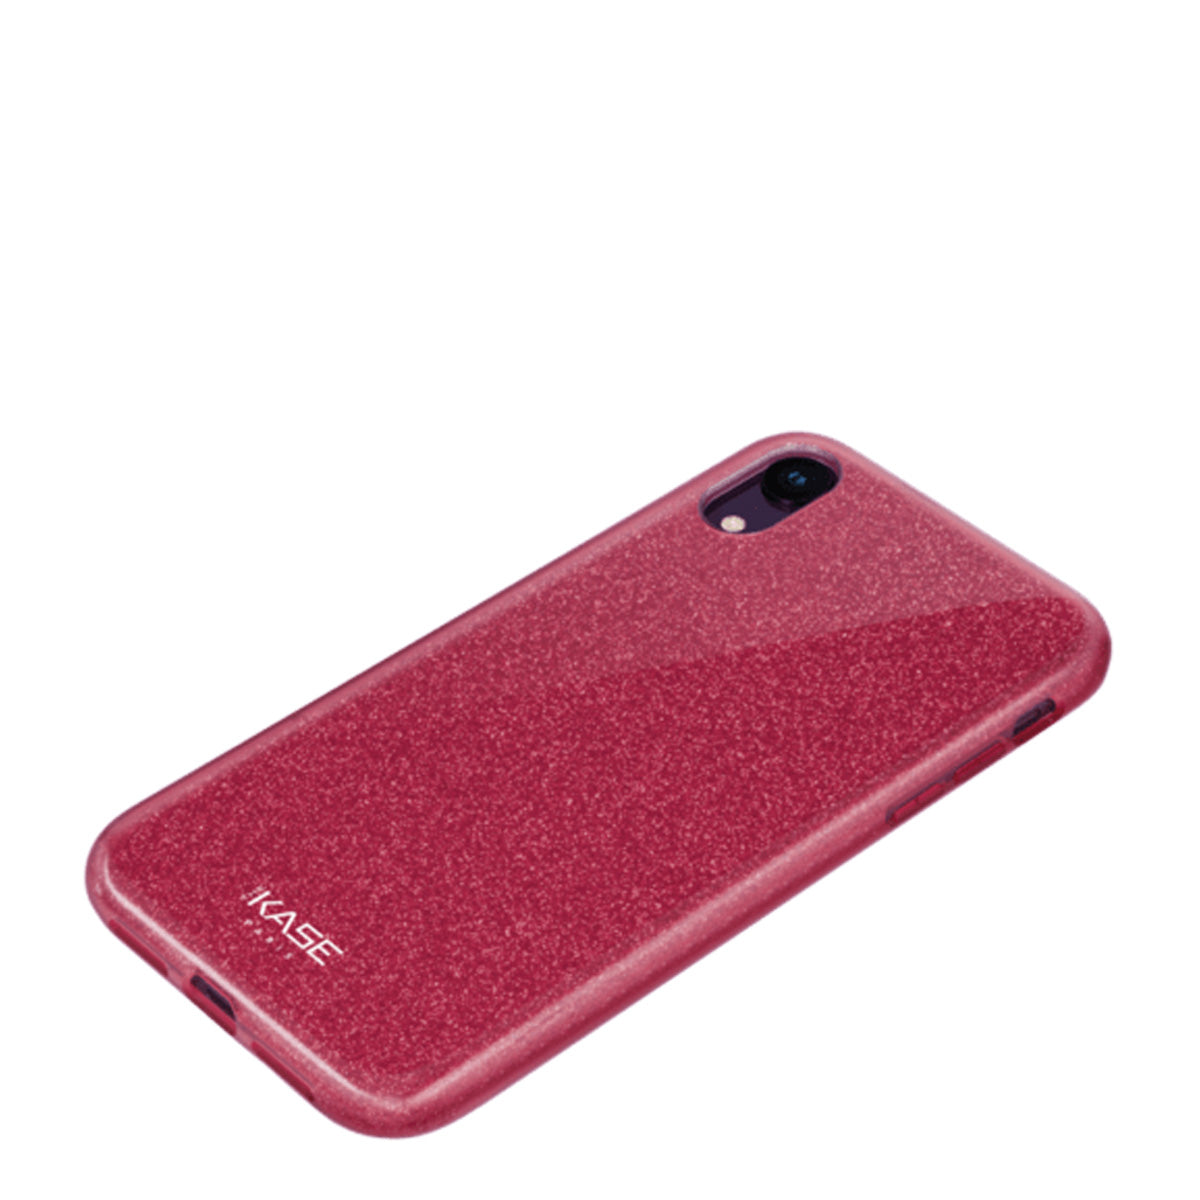 Capa de Smartphone The Kase Sparkly Glitter Apple iPhone Xr Vermelha